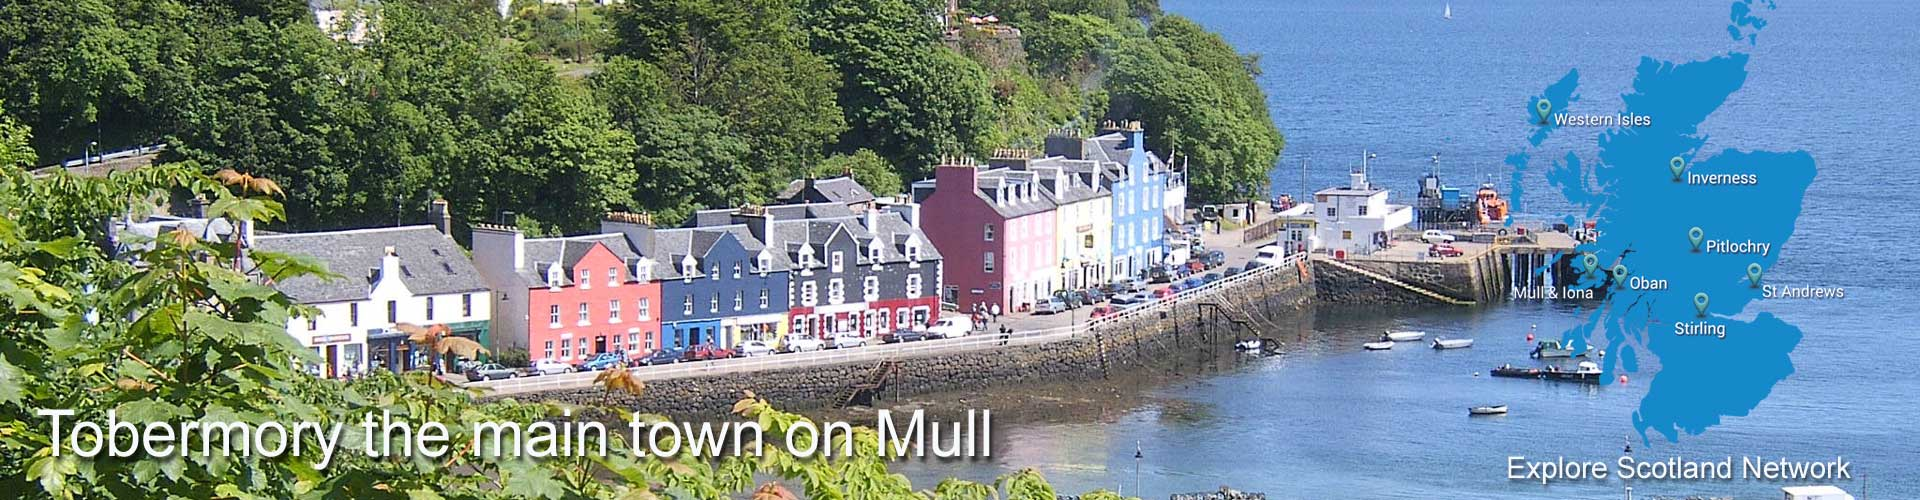 Tobermory Isle of Mull | Information about Tobermory on the Isle of